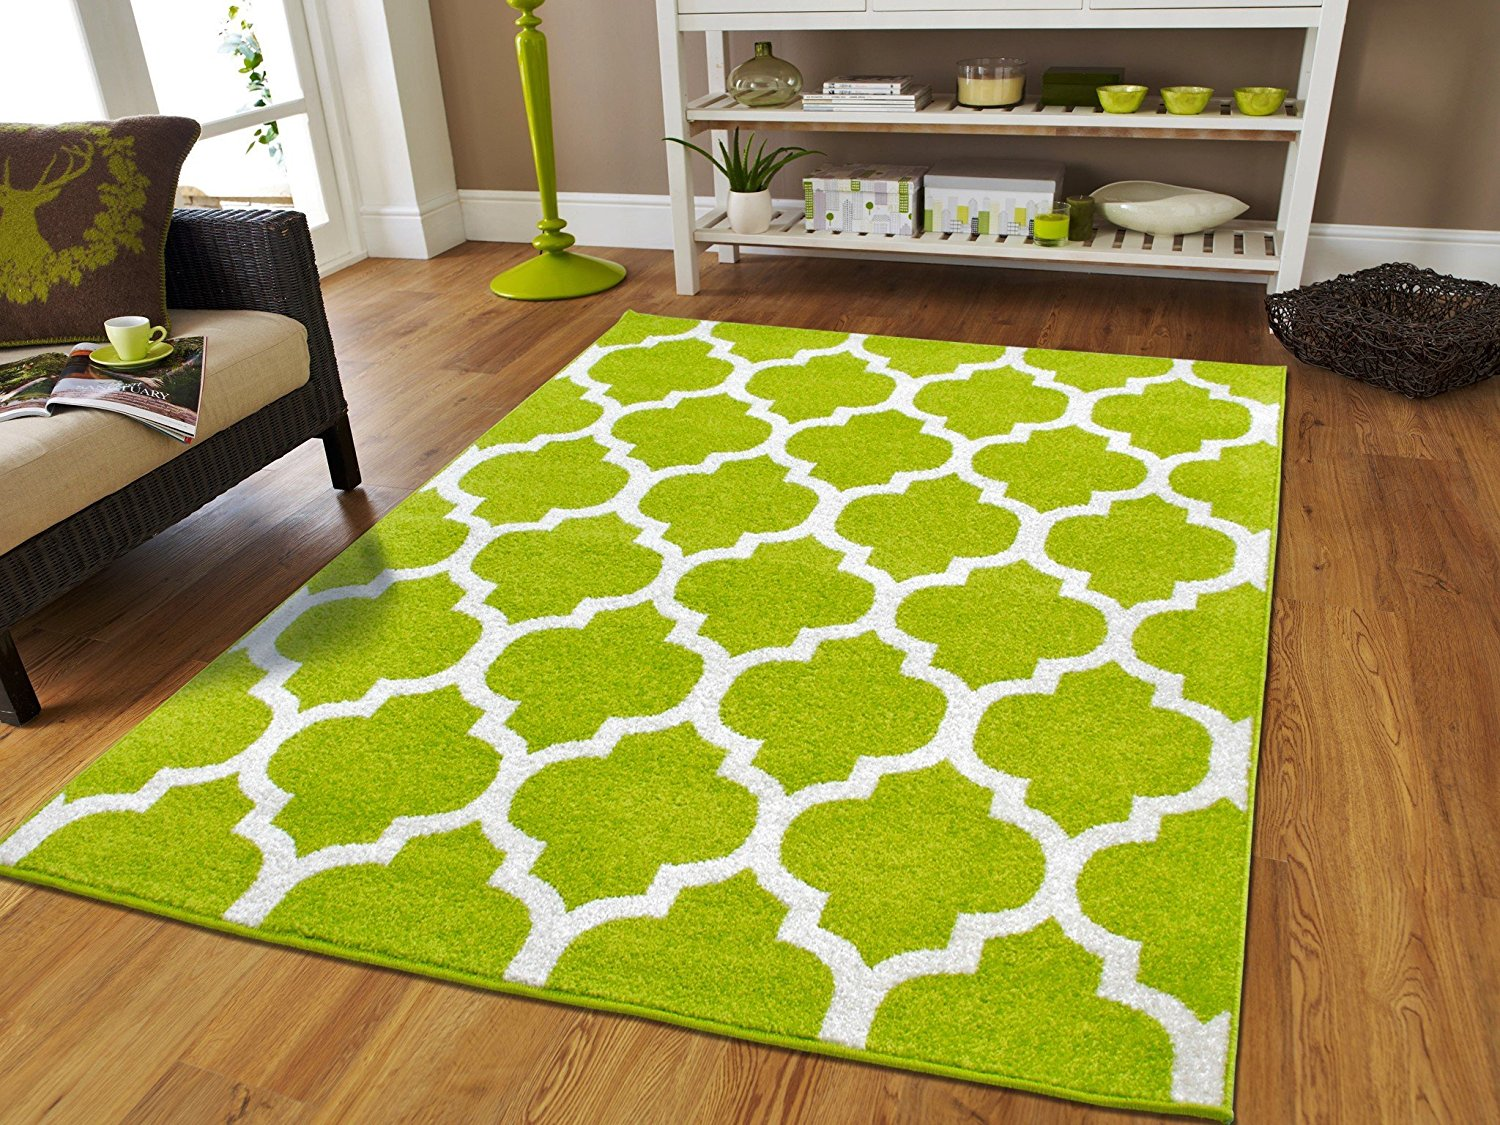 luxury morrocan trellis green rugs 8x10 area rugs under 100 bedroom rugs 8x11 green rug